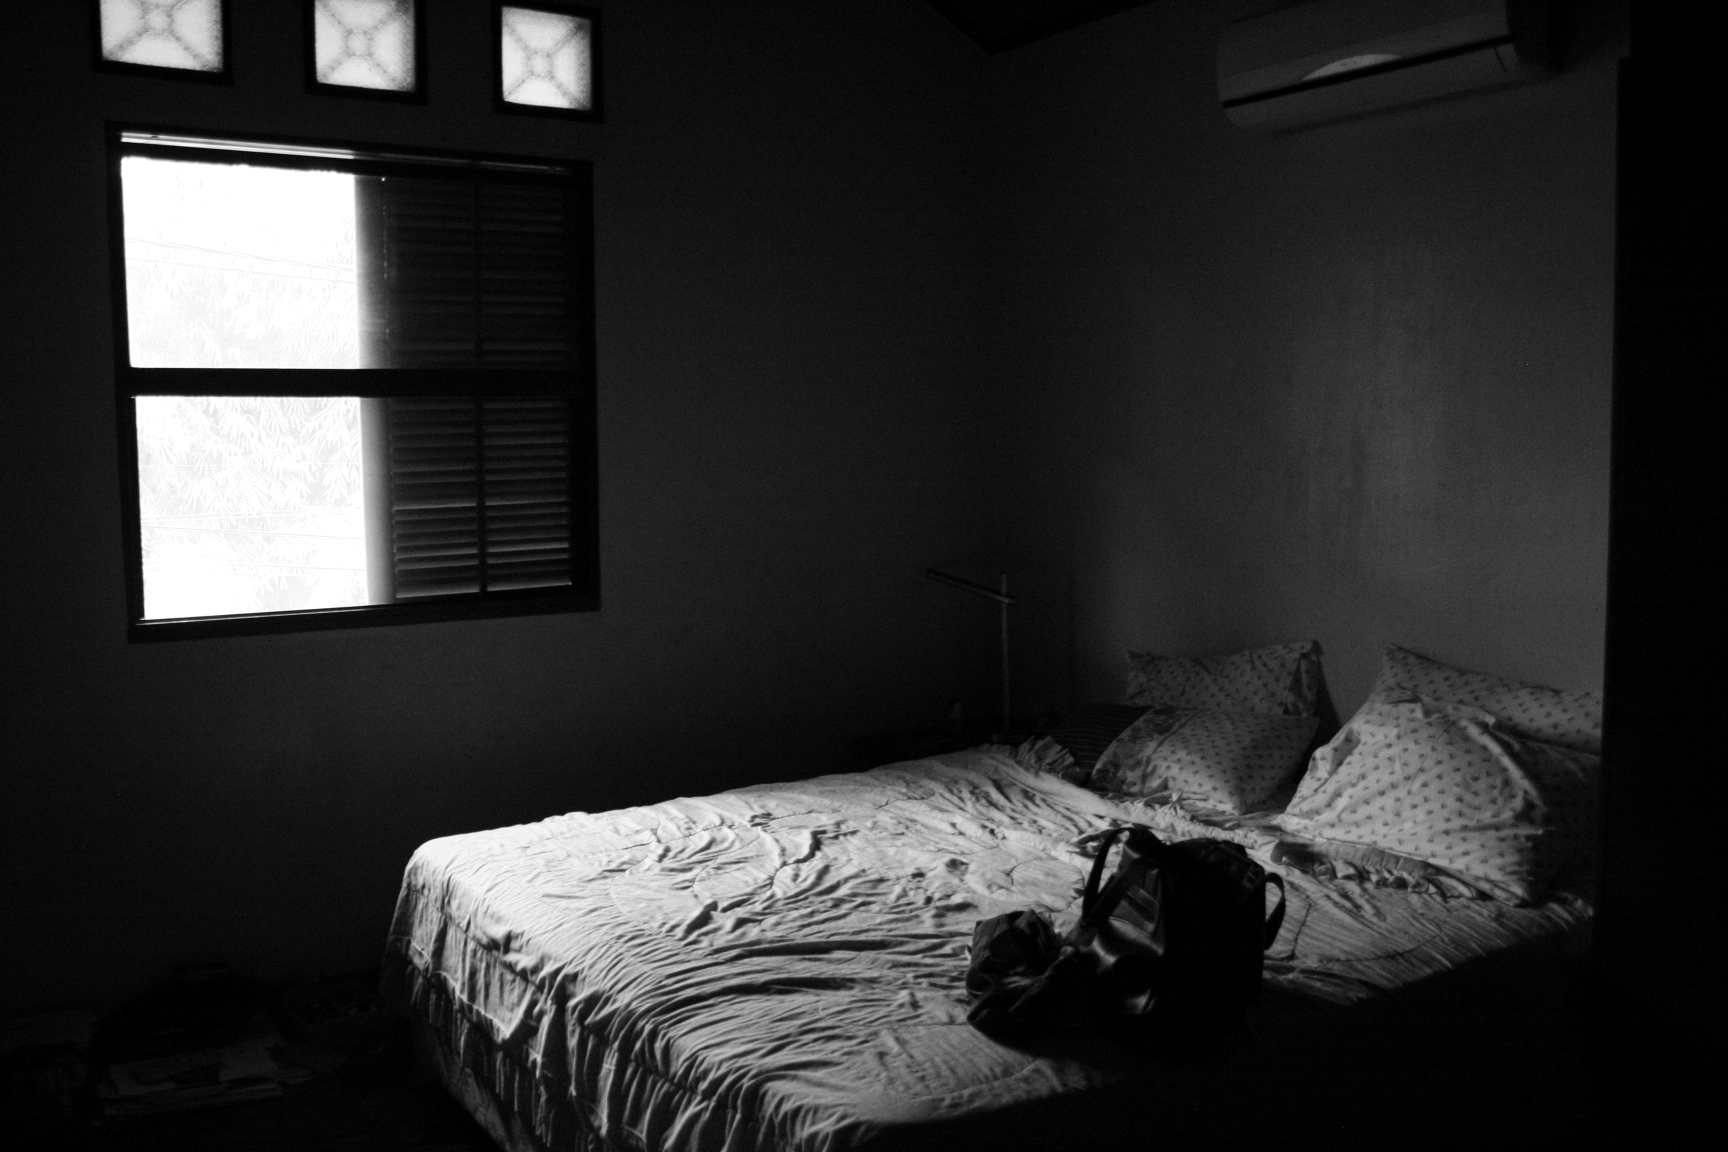 Dark Rooms Bedrooms And Lonely On Pinterest